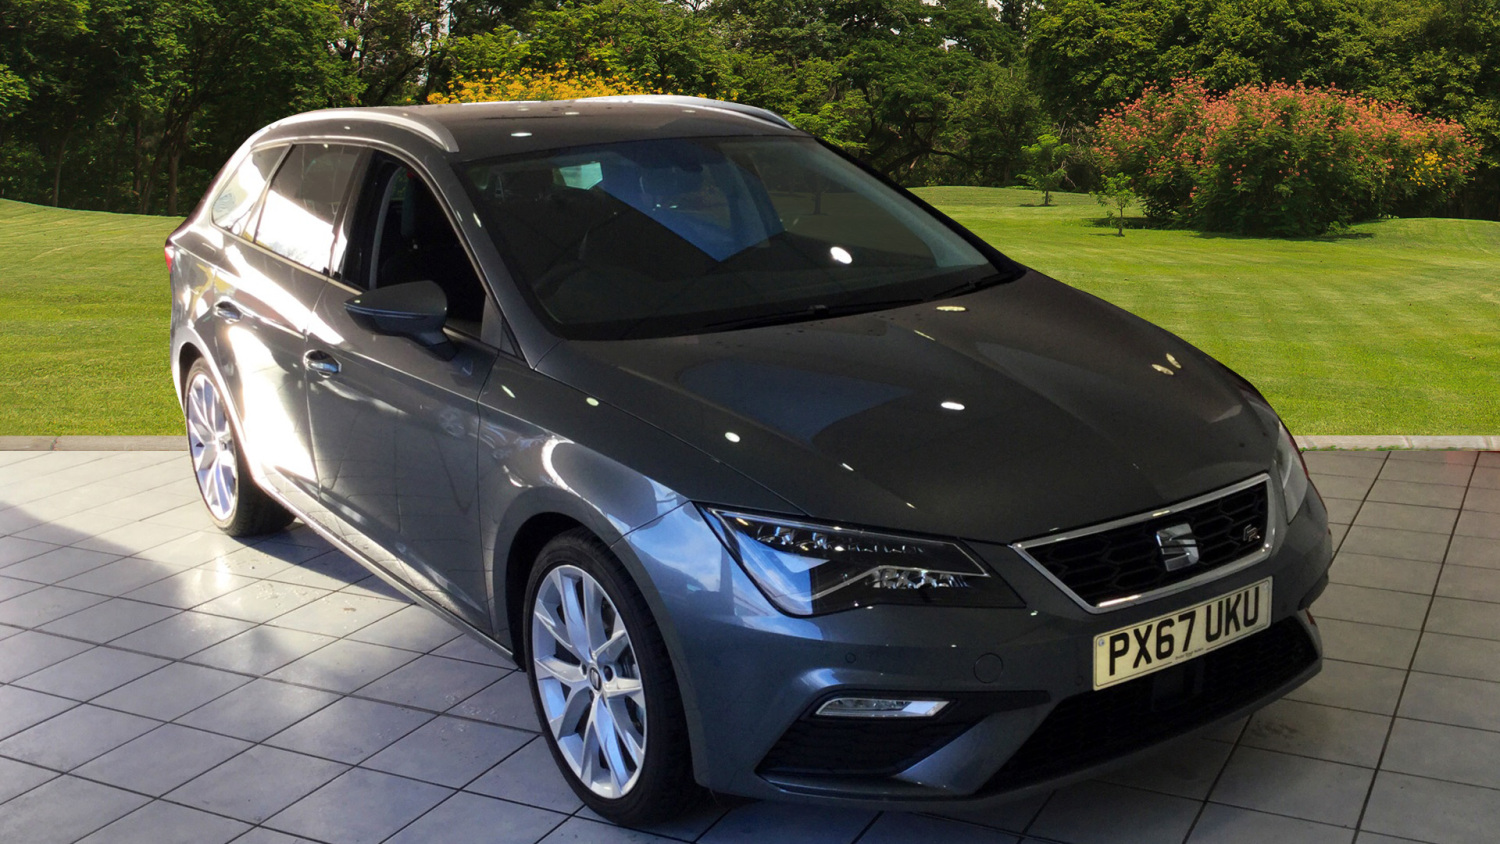 buy online seat leon 2 0 tdi 184 fr technology 5dr diesel hatchback for sale bristol street motors. Black Bedroom Furniture Sets. Home Design Ideas